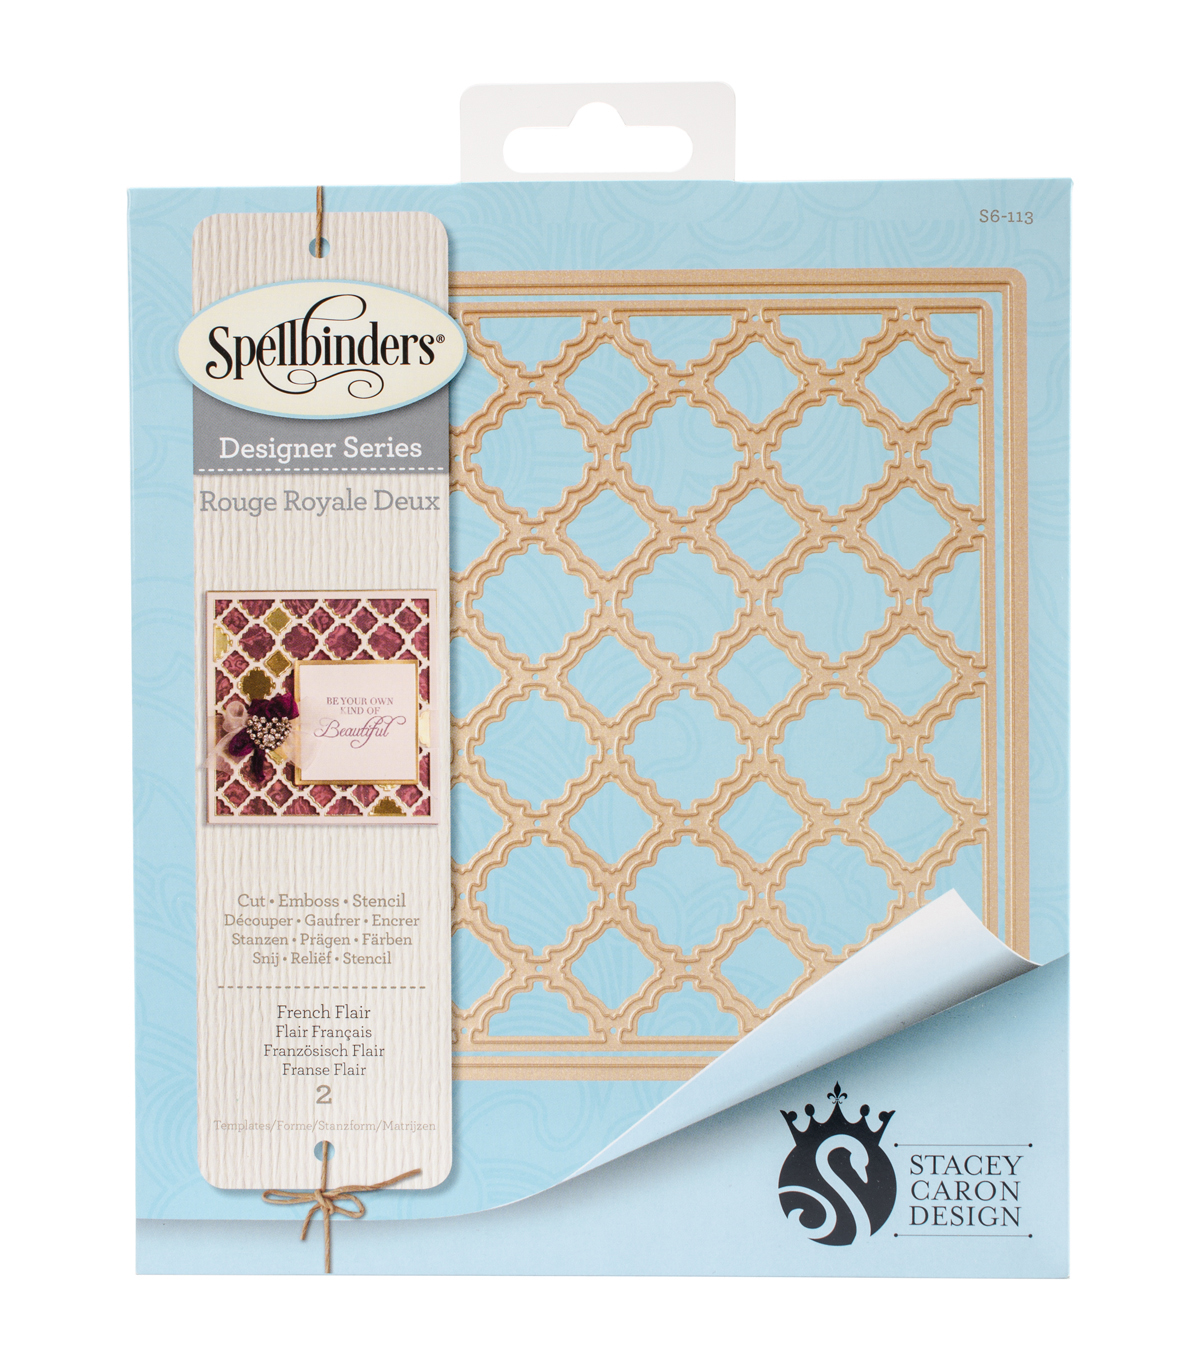 Spellbinders® Card Creator Stacey Caron Etched Die-French Flair